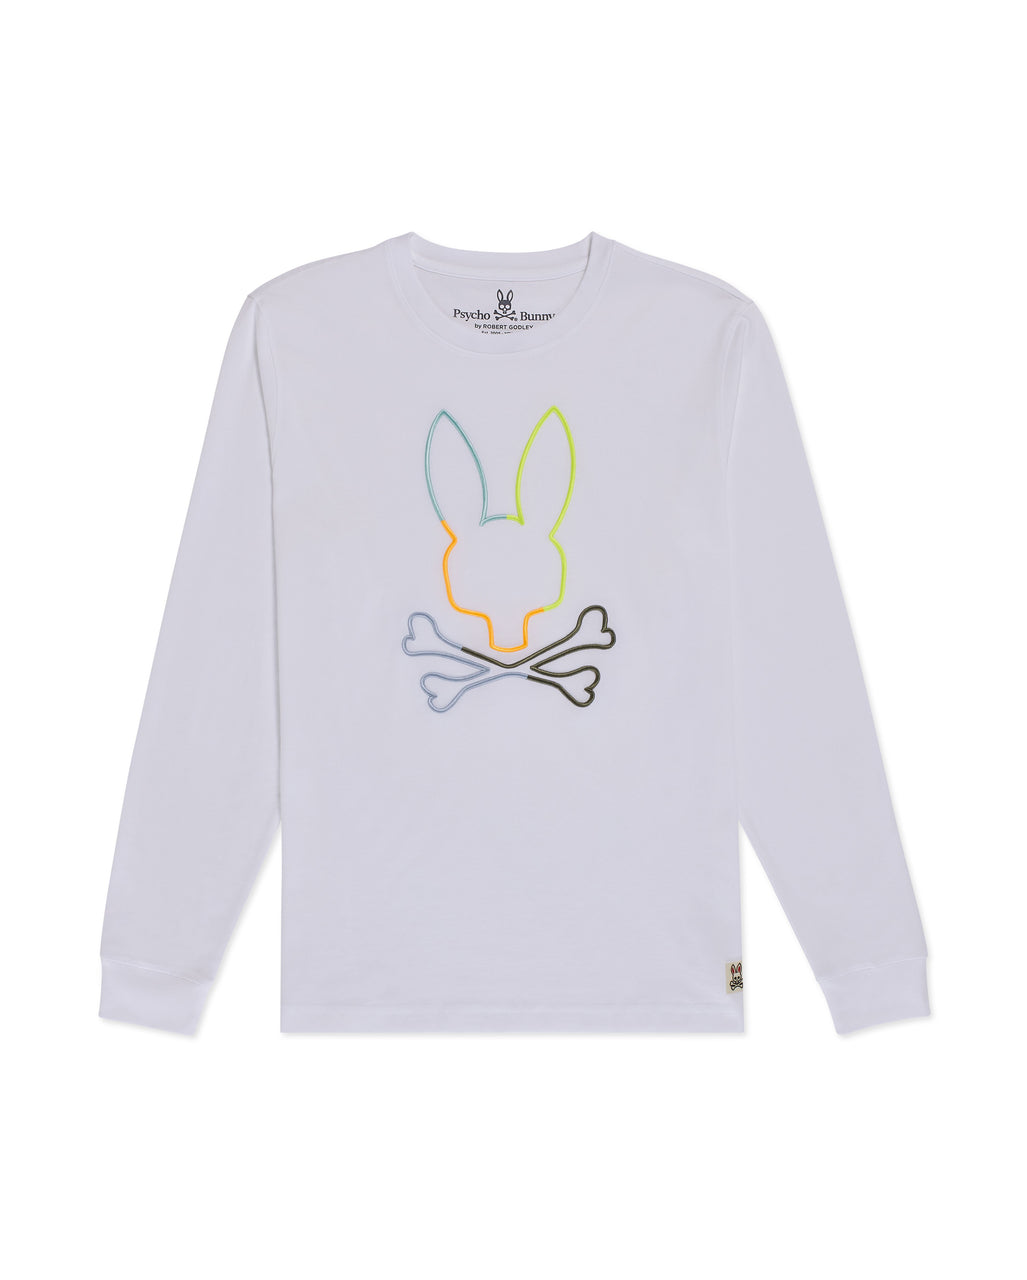 Psycho Bunny Boy's Sheffield Long Sleeve Graphic Tee - White